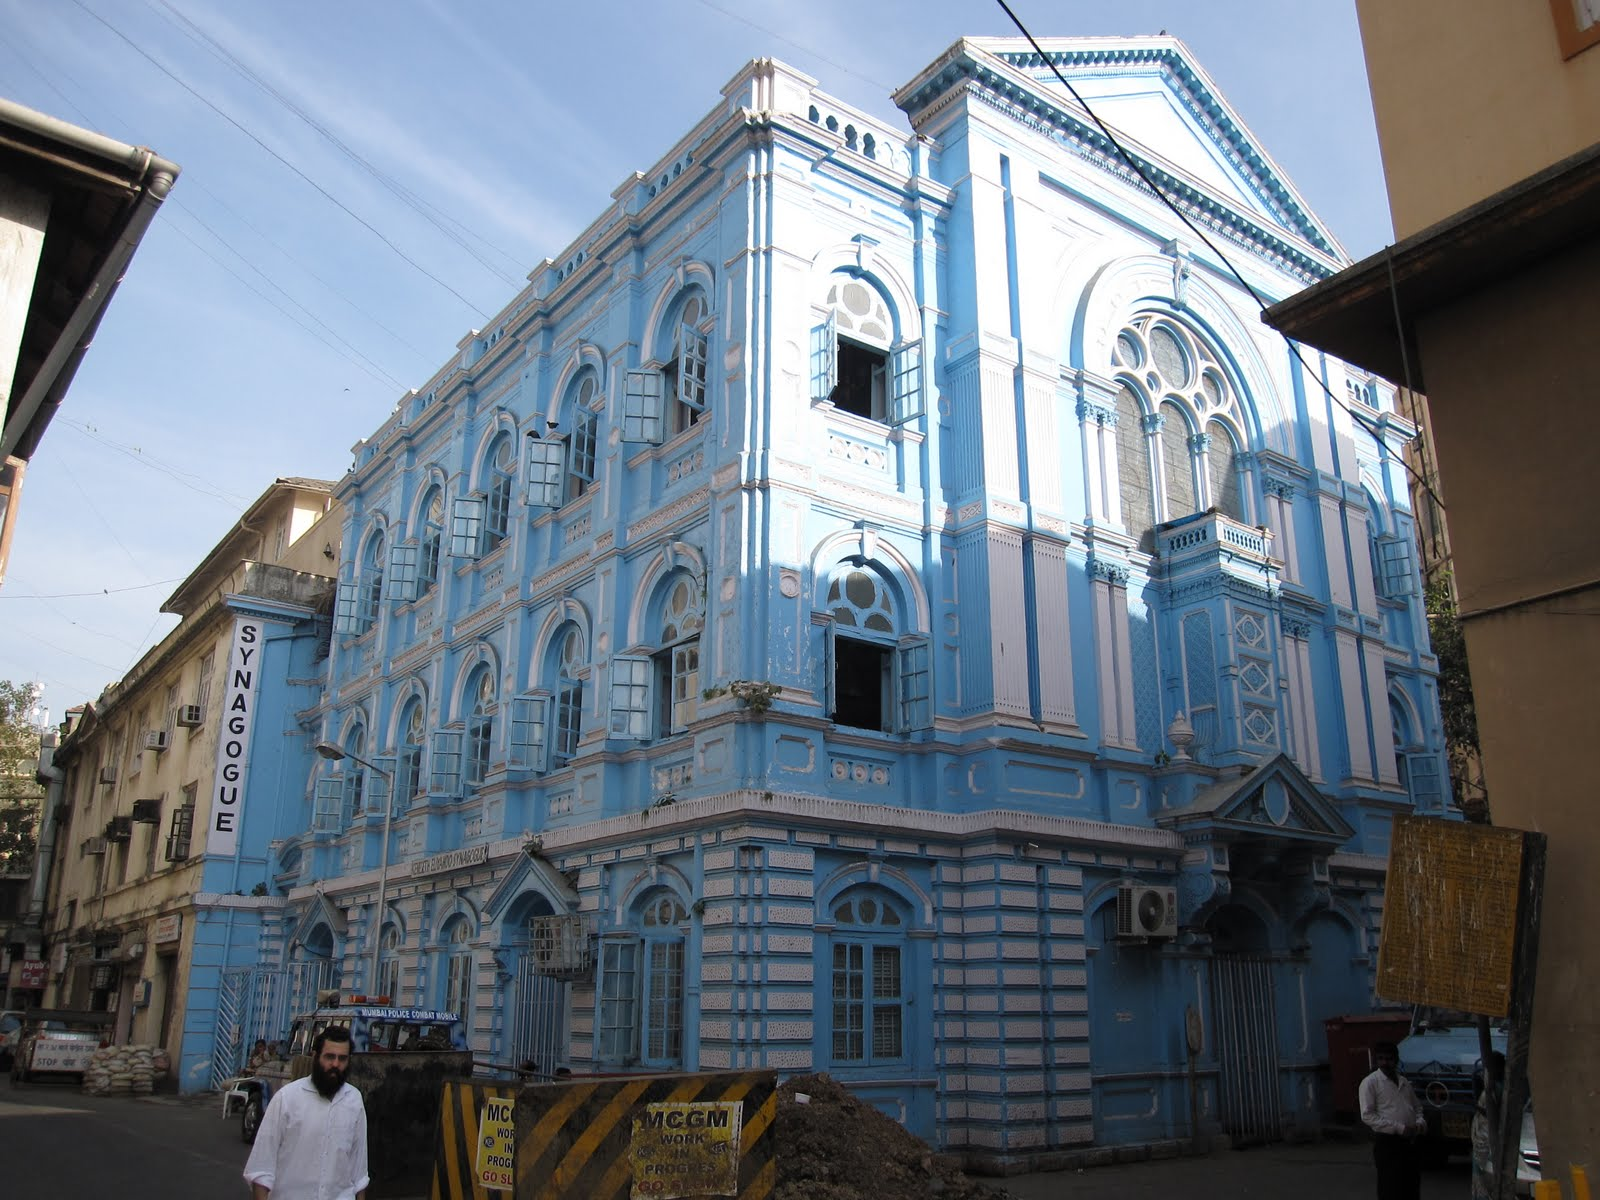 The Keneseth Eliyahoo Synagogue in Mumbai, India. flickr/Stefan Krasowski.